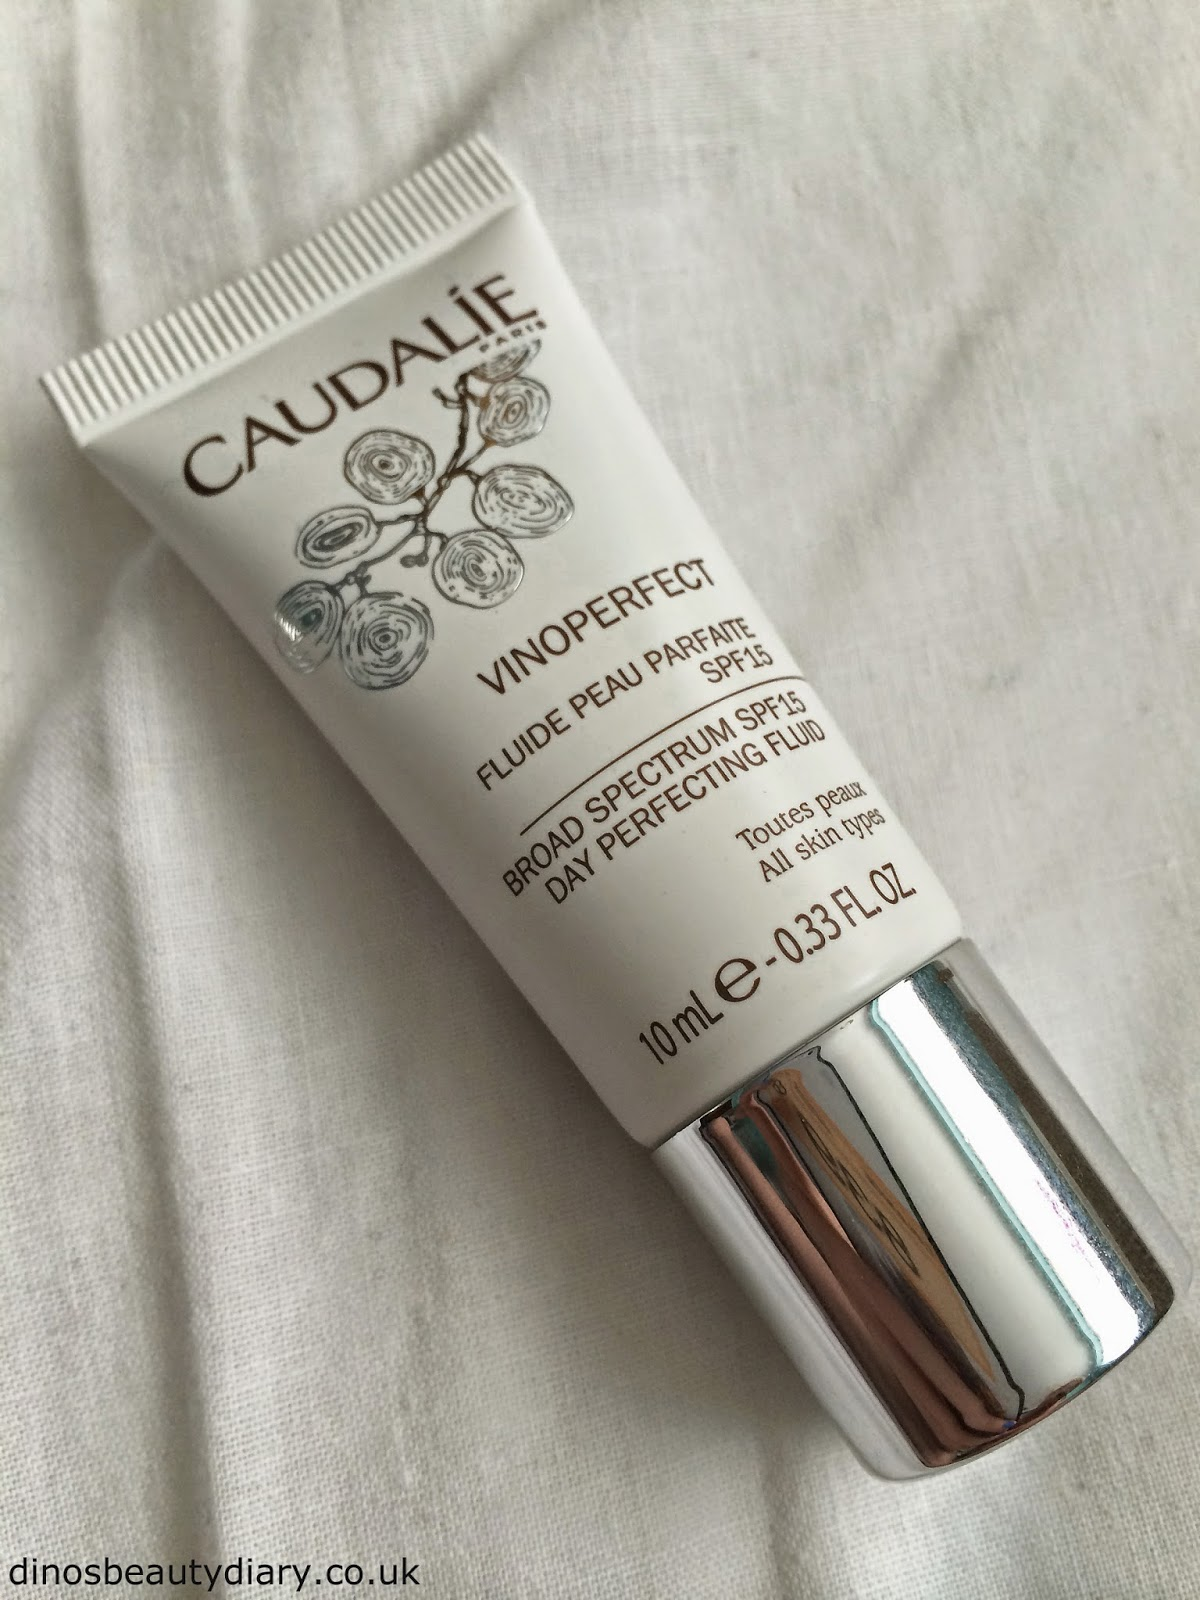 Dinos Beauty Diary - June and July Birchbox - Caudalie Day Perfecting Fluid